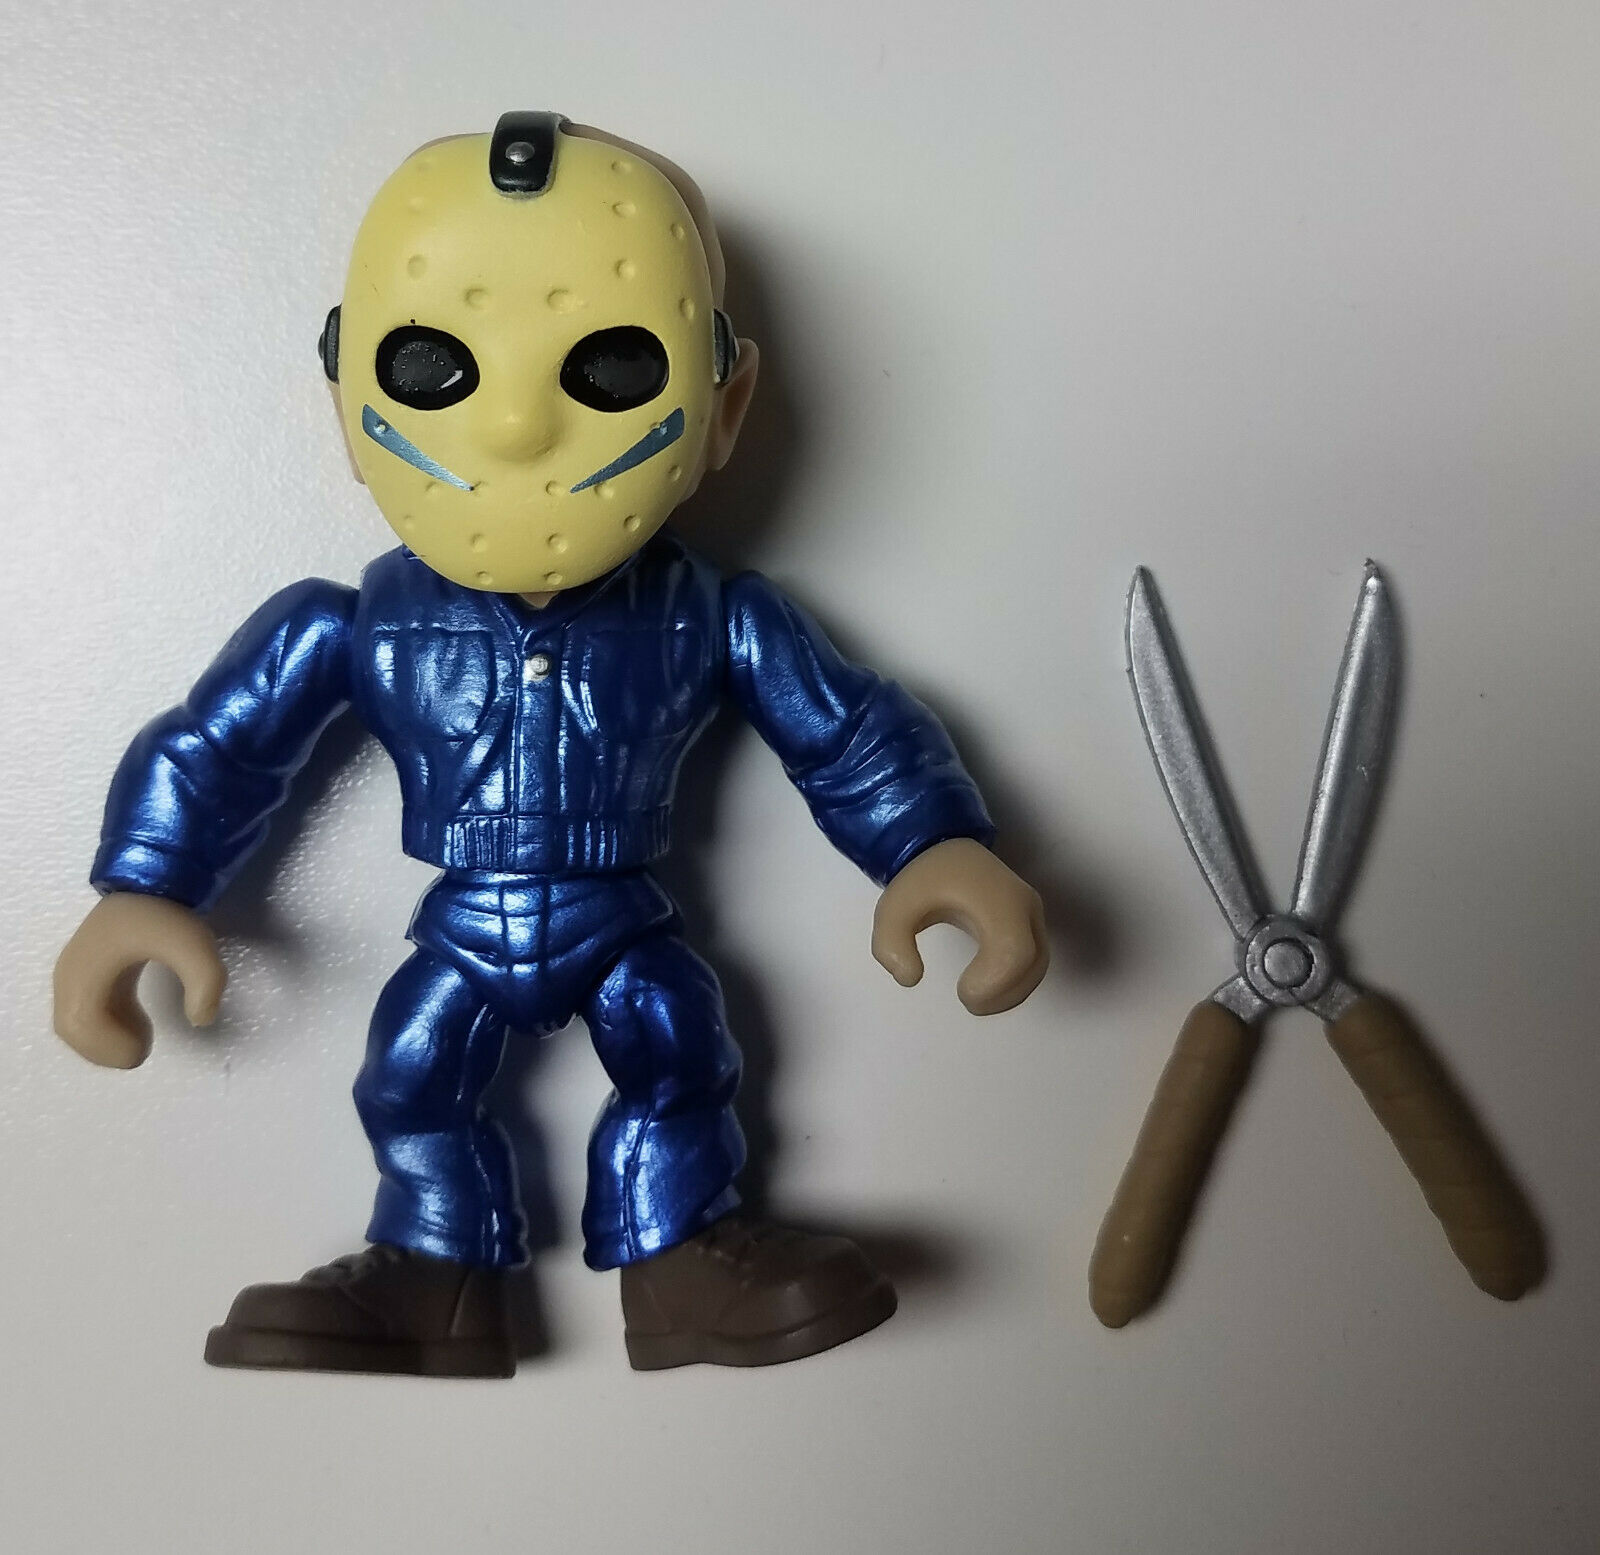 Loyal Subjects Horror Friday the  13th V Mettuttiic Jason 1 96 caliente Topic Exclusive  a prezzi accessibili